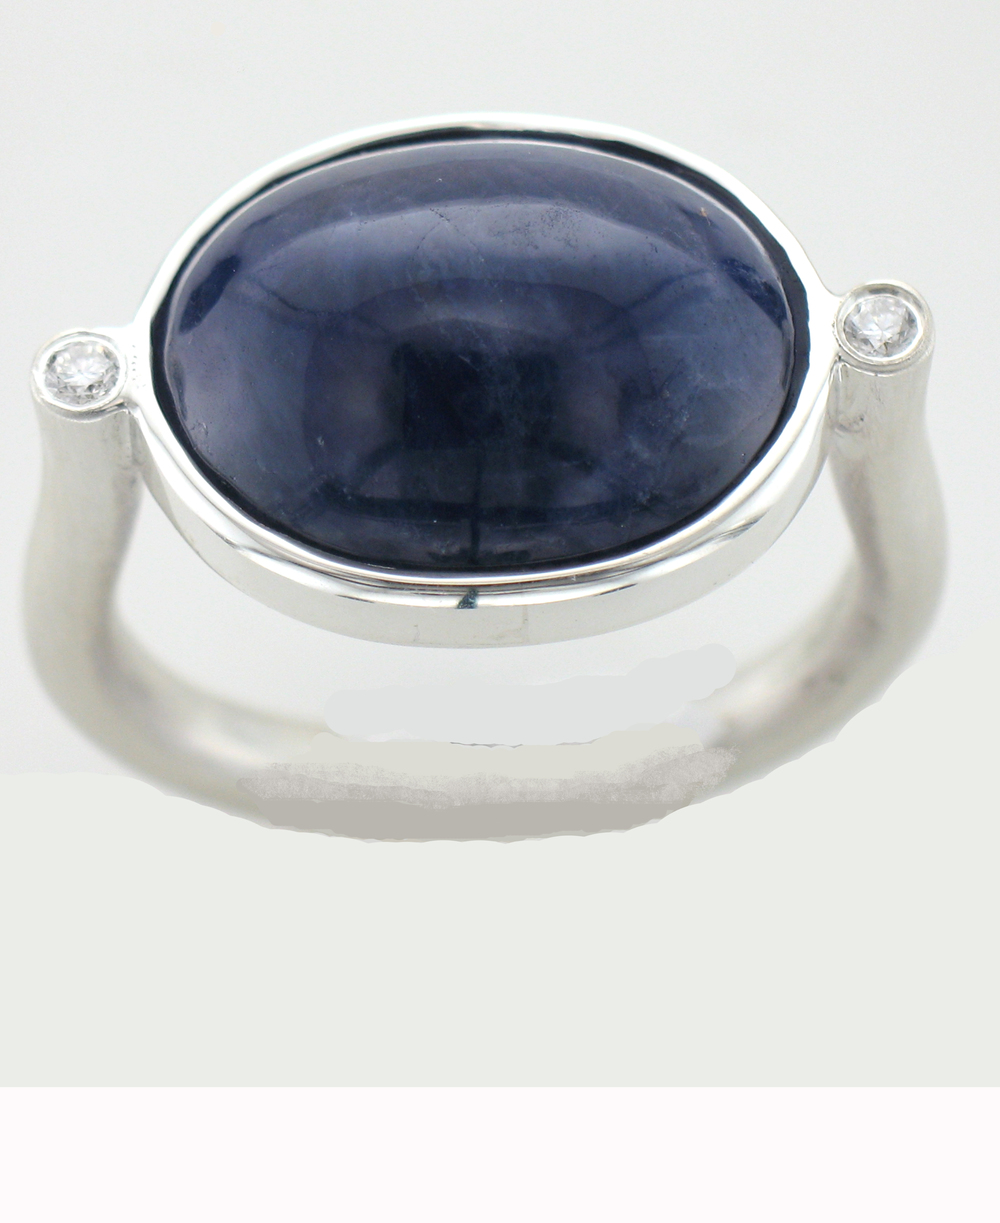 Sapphire Cabochon ring with Diamond accents set in brushed Sterling Silver